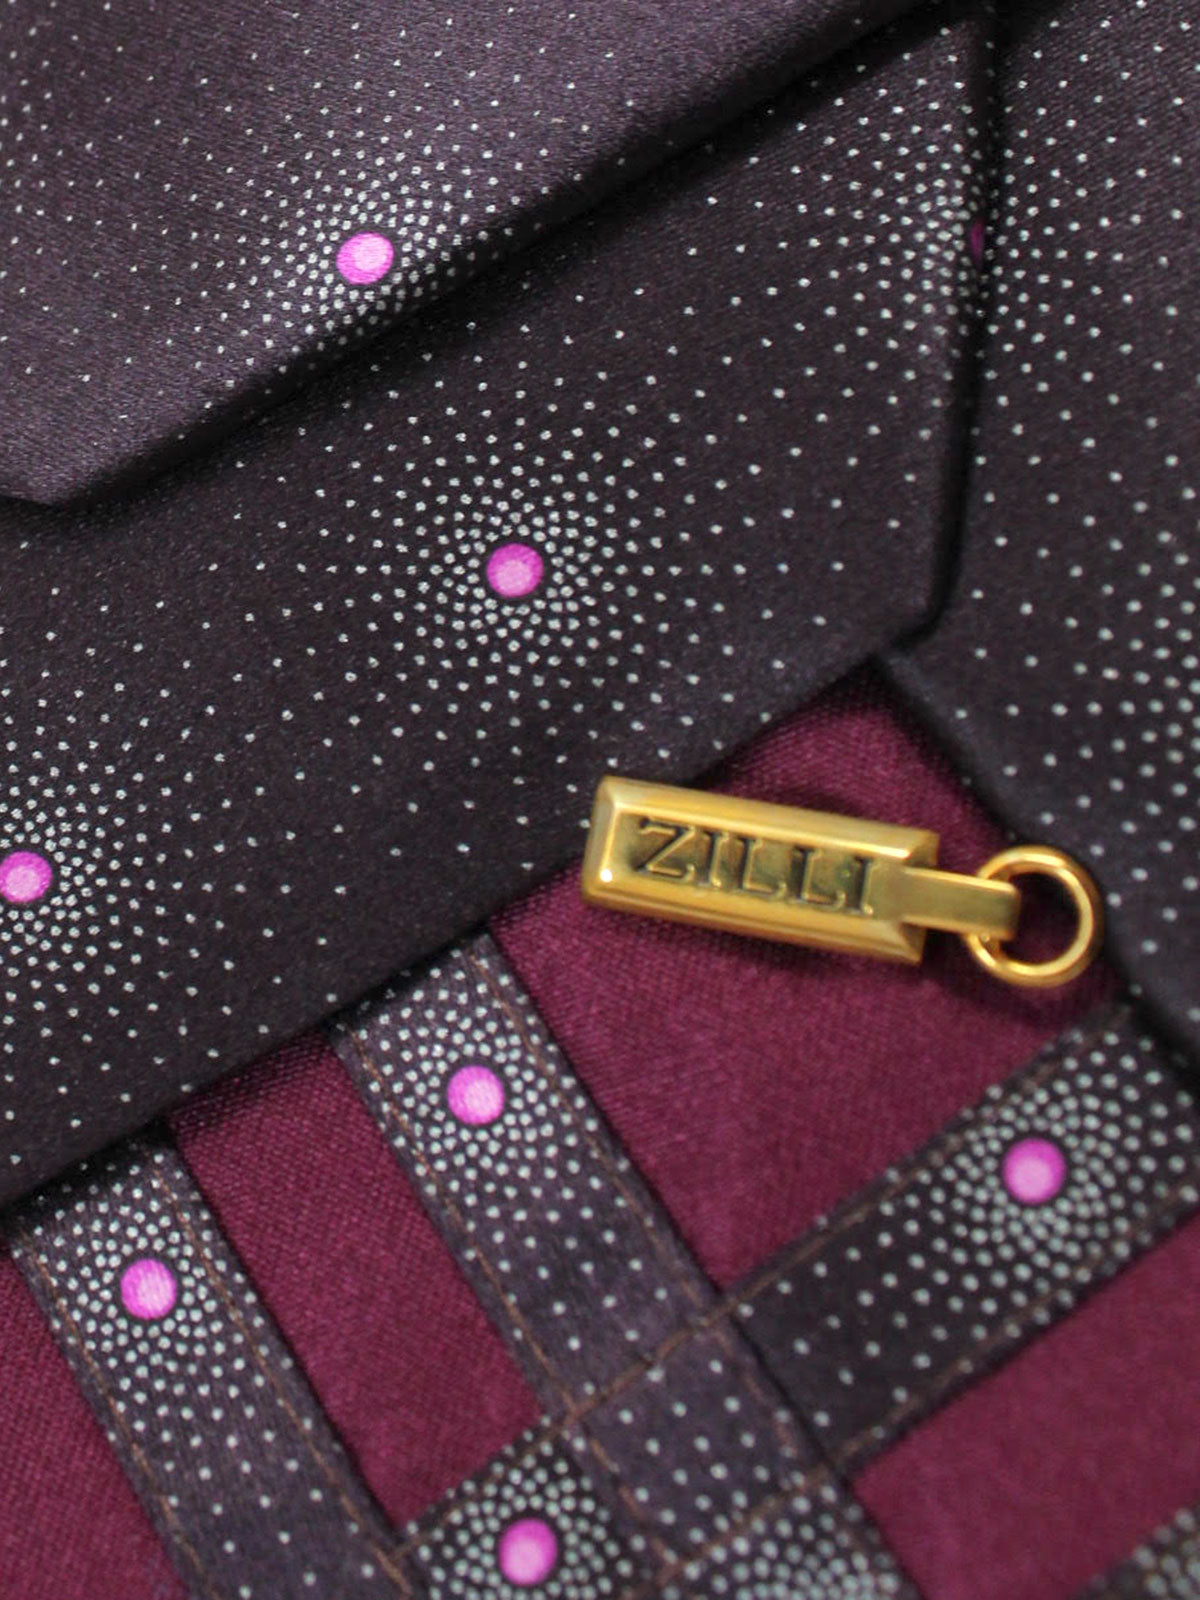 Zilli Silk Tie Purple Pink Geometric Design - Wide Necktie